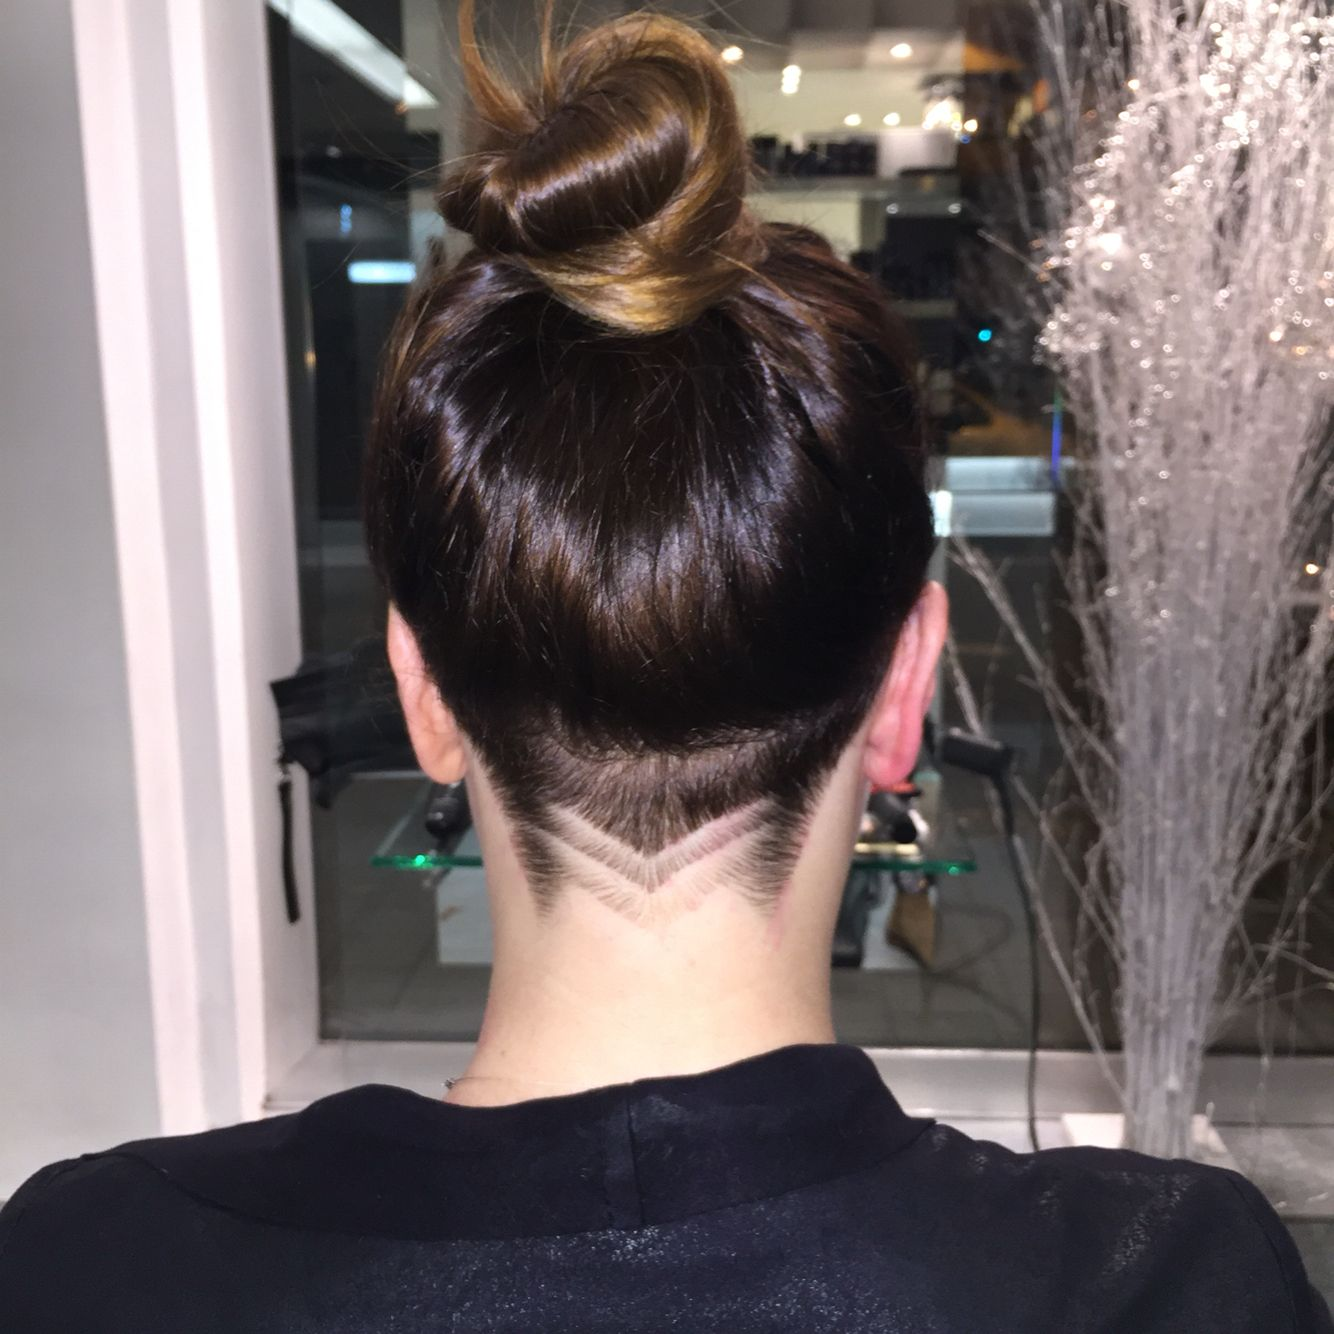 Image result for undercut side view long hair woman